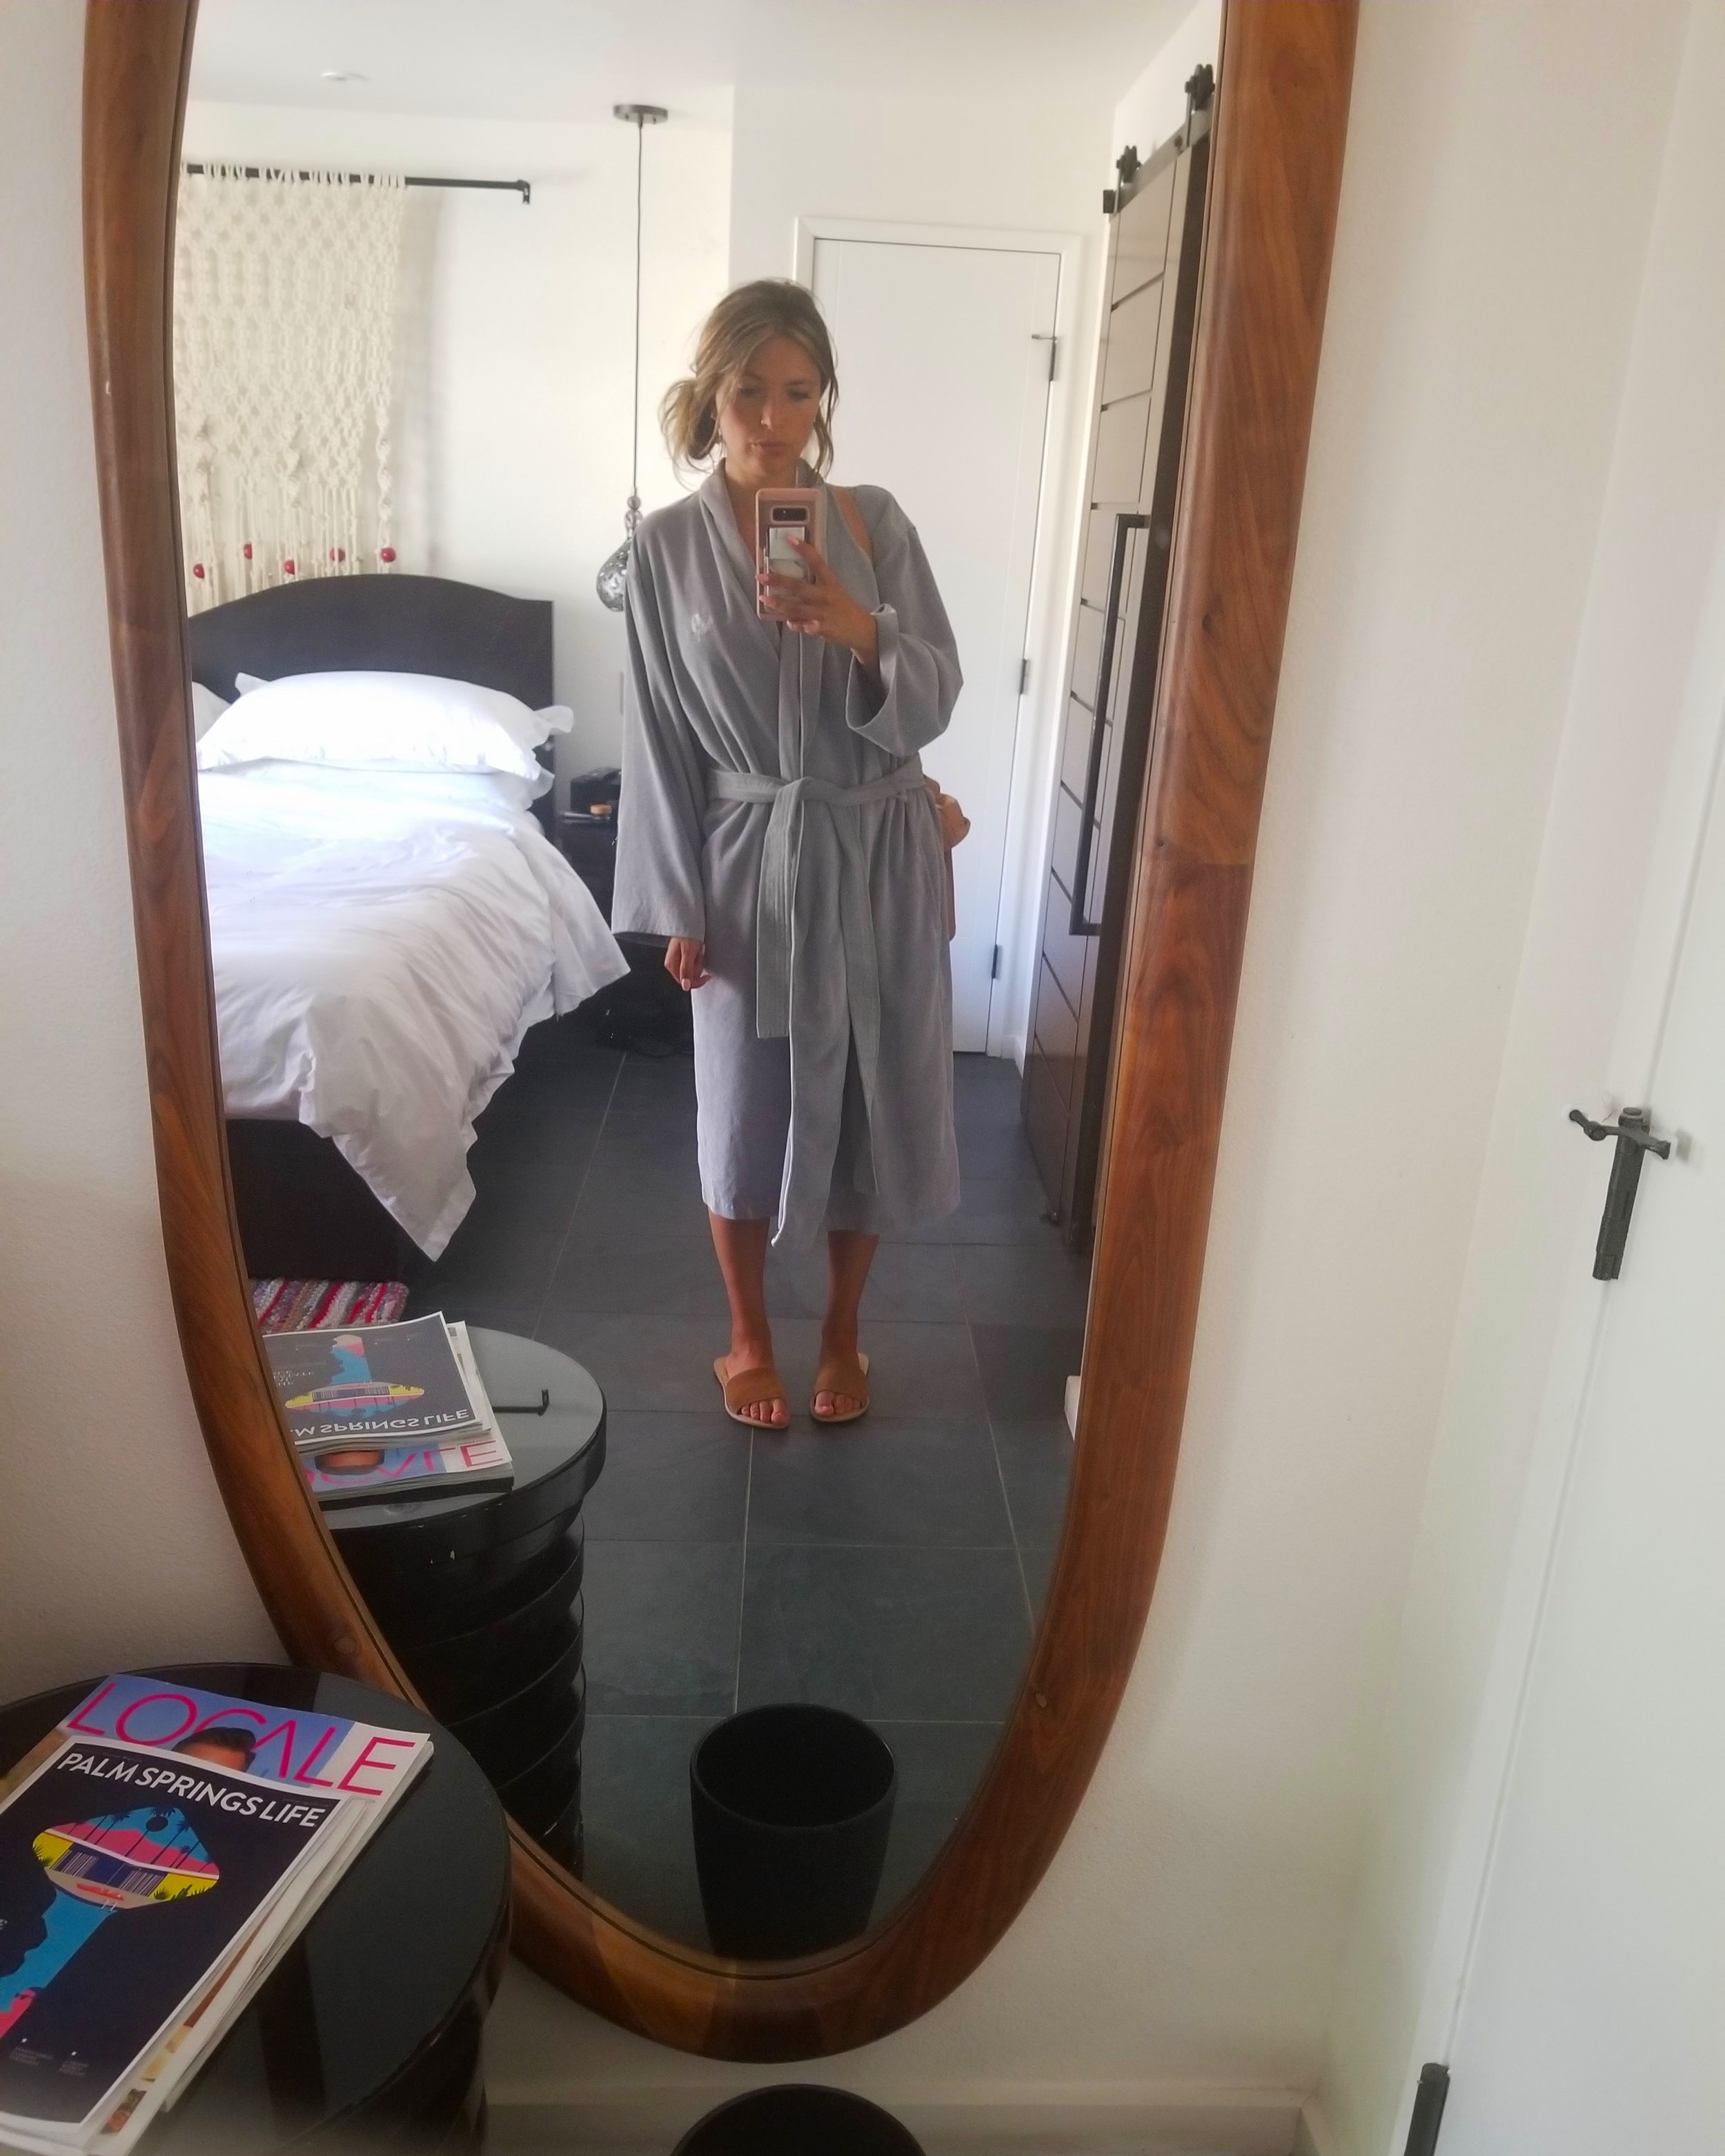 This was my uniform basically the whole time with a bathing suit underneath. Everyone on the property walks around in robes and even wear them to breakfast, lunch and dinner. Heaven not having to think about what to wear and to just focus solely on comfort and relaxation!